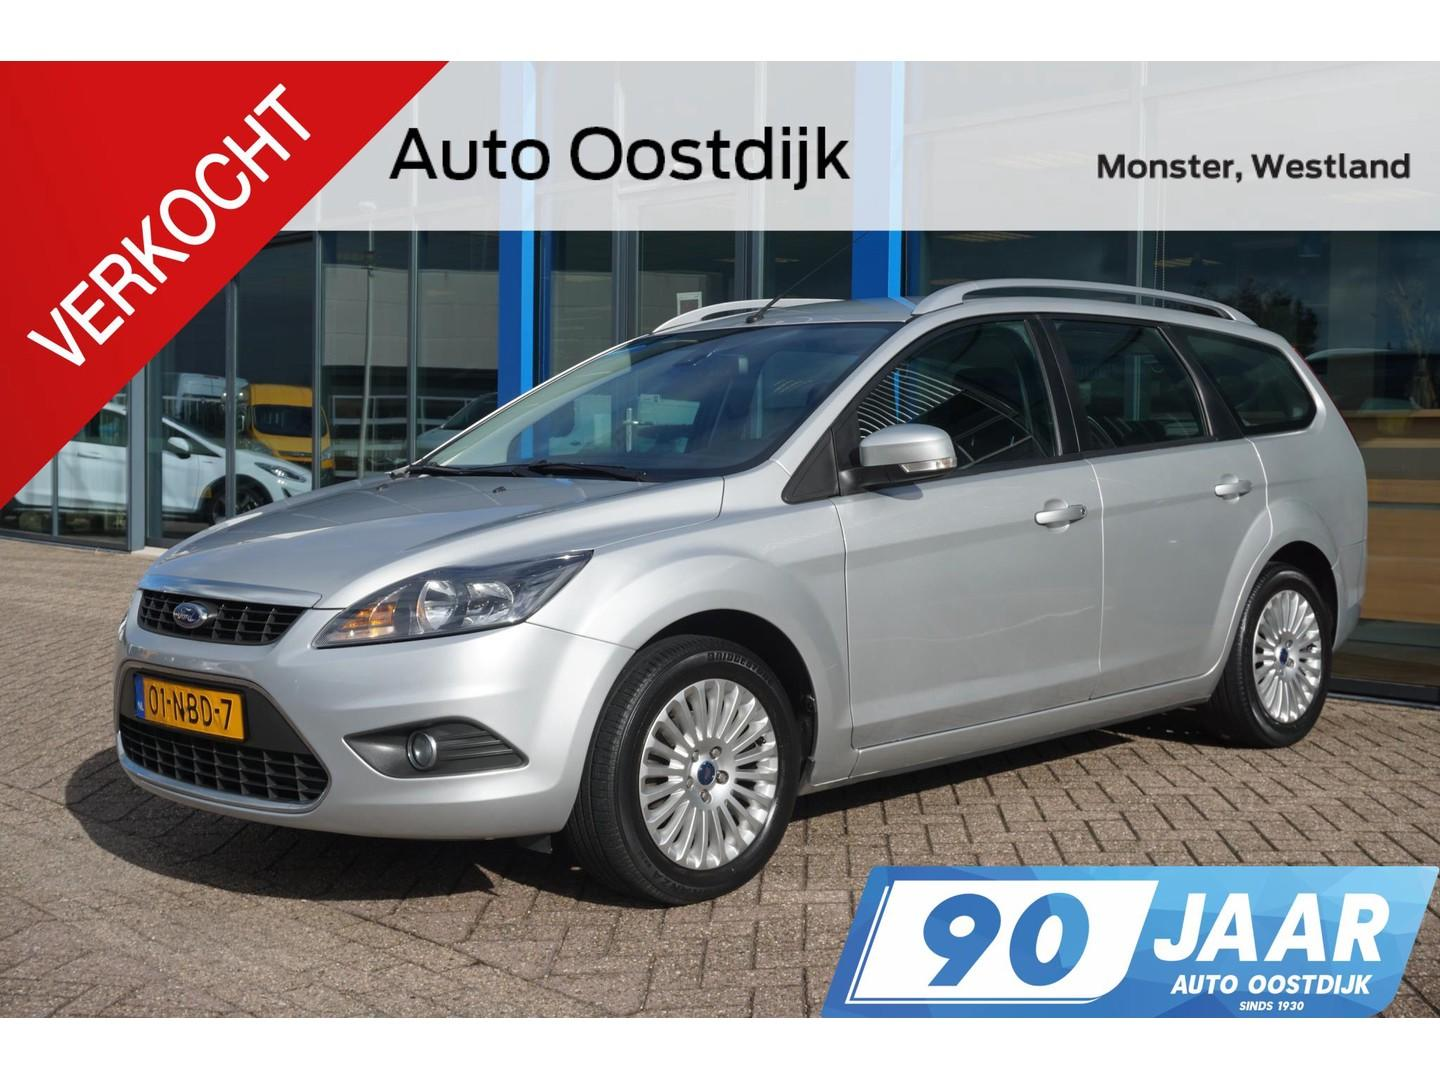 Ford Focus Wagon 1.8 limited 125pk climate trekhaak navi voorruitverwarming *lage km-stand*